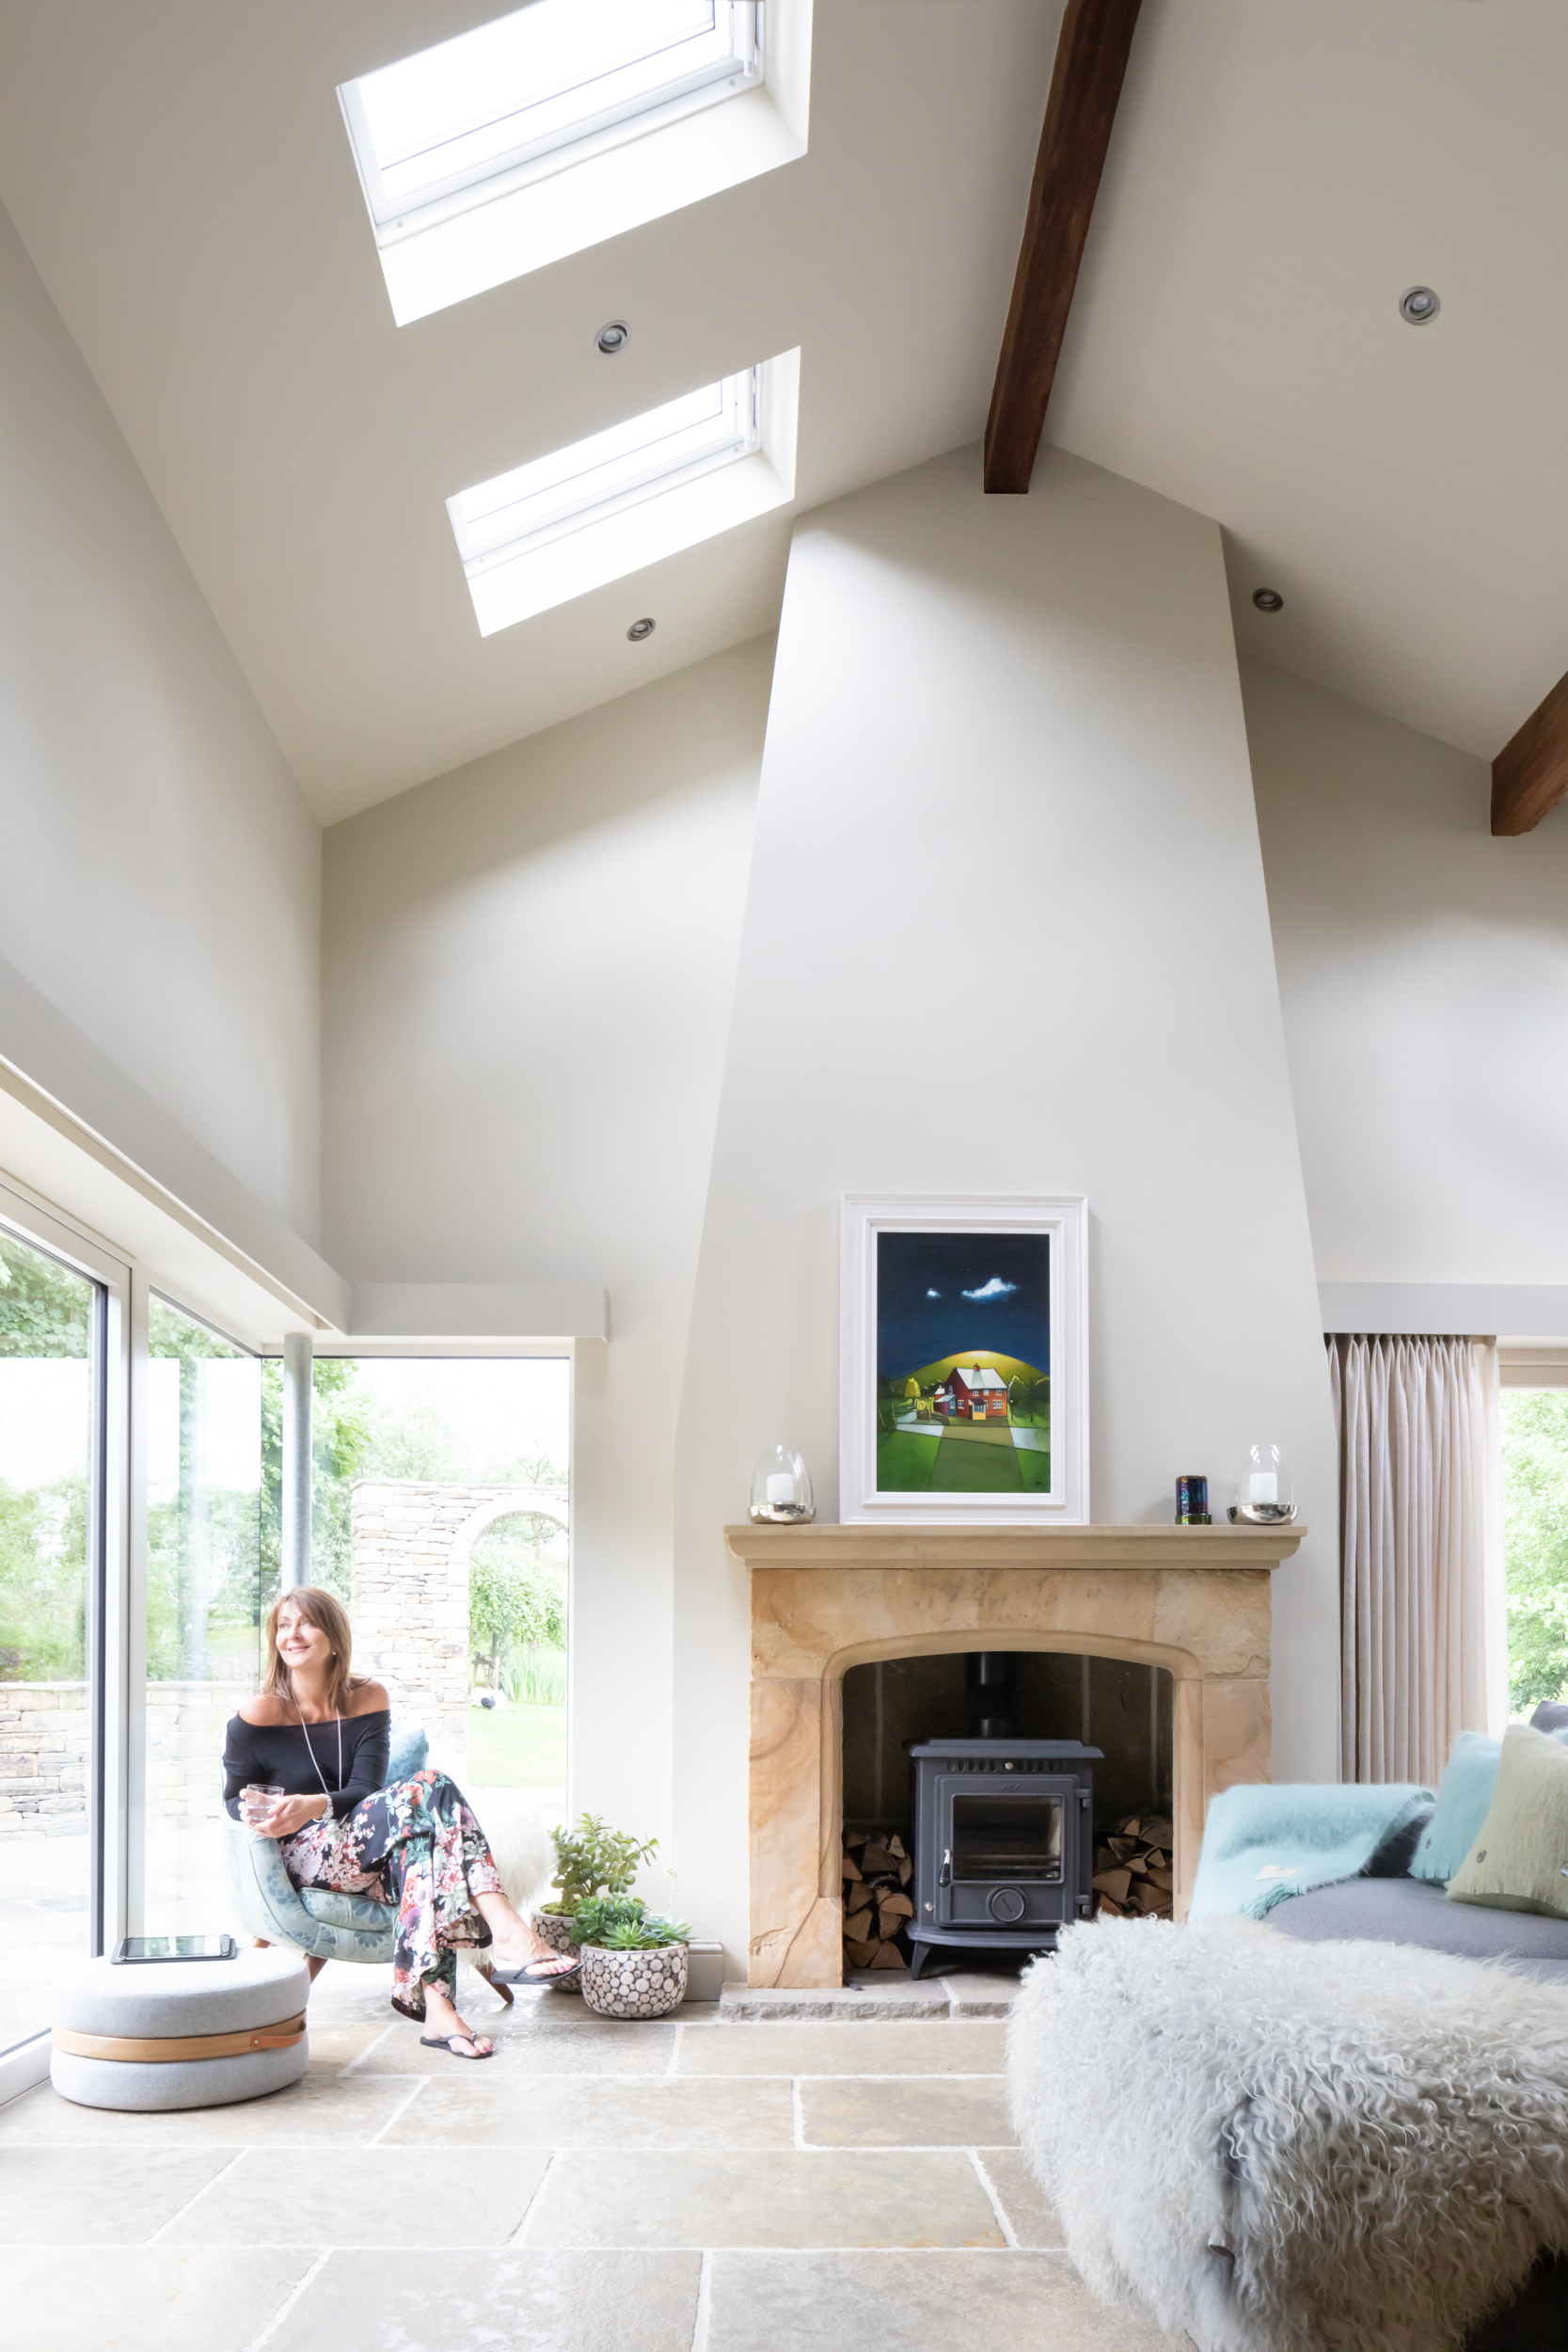 Paul Craig Interior Photographer, People Photography, Living room